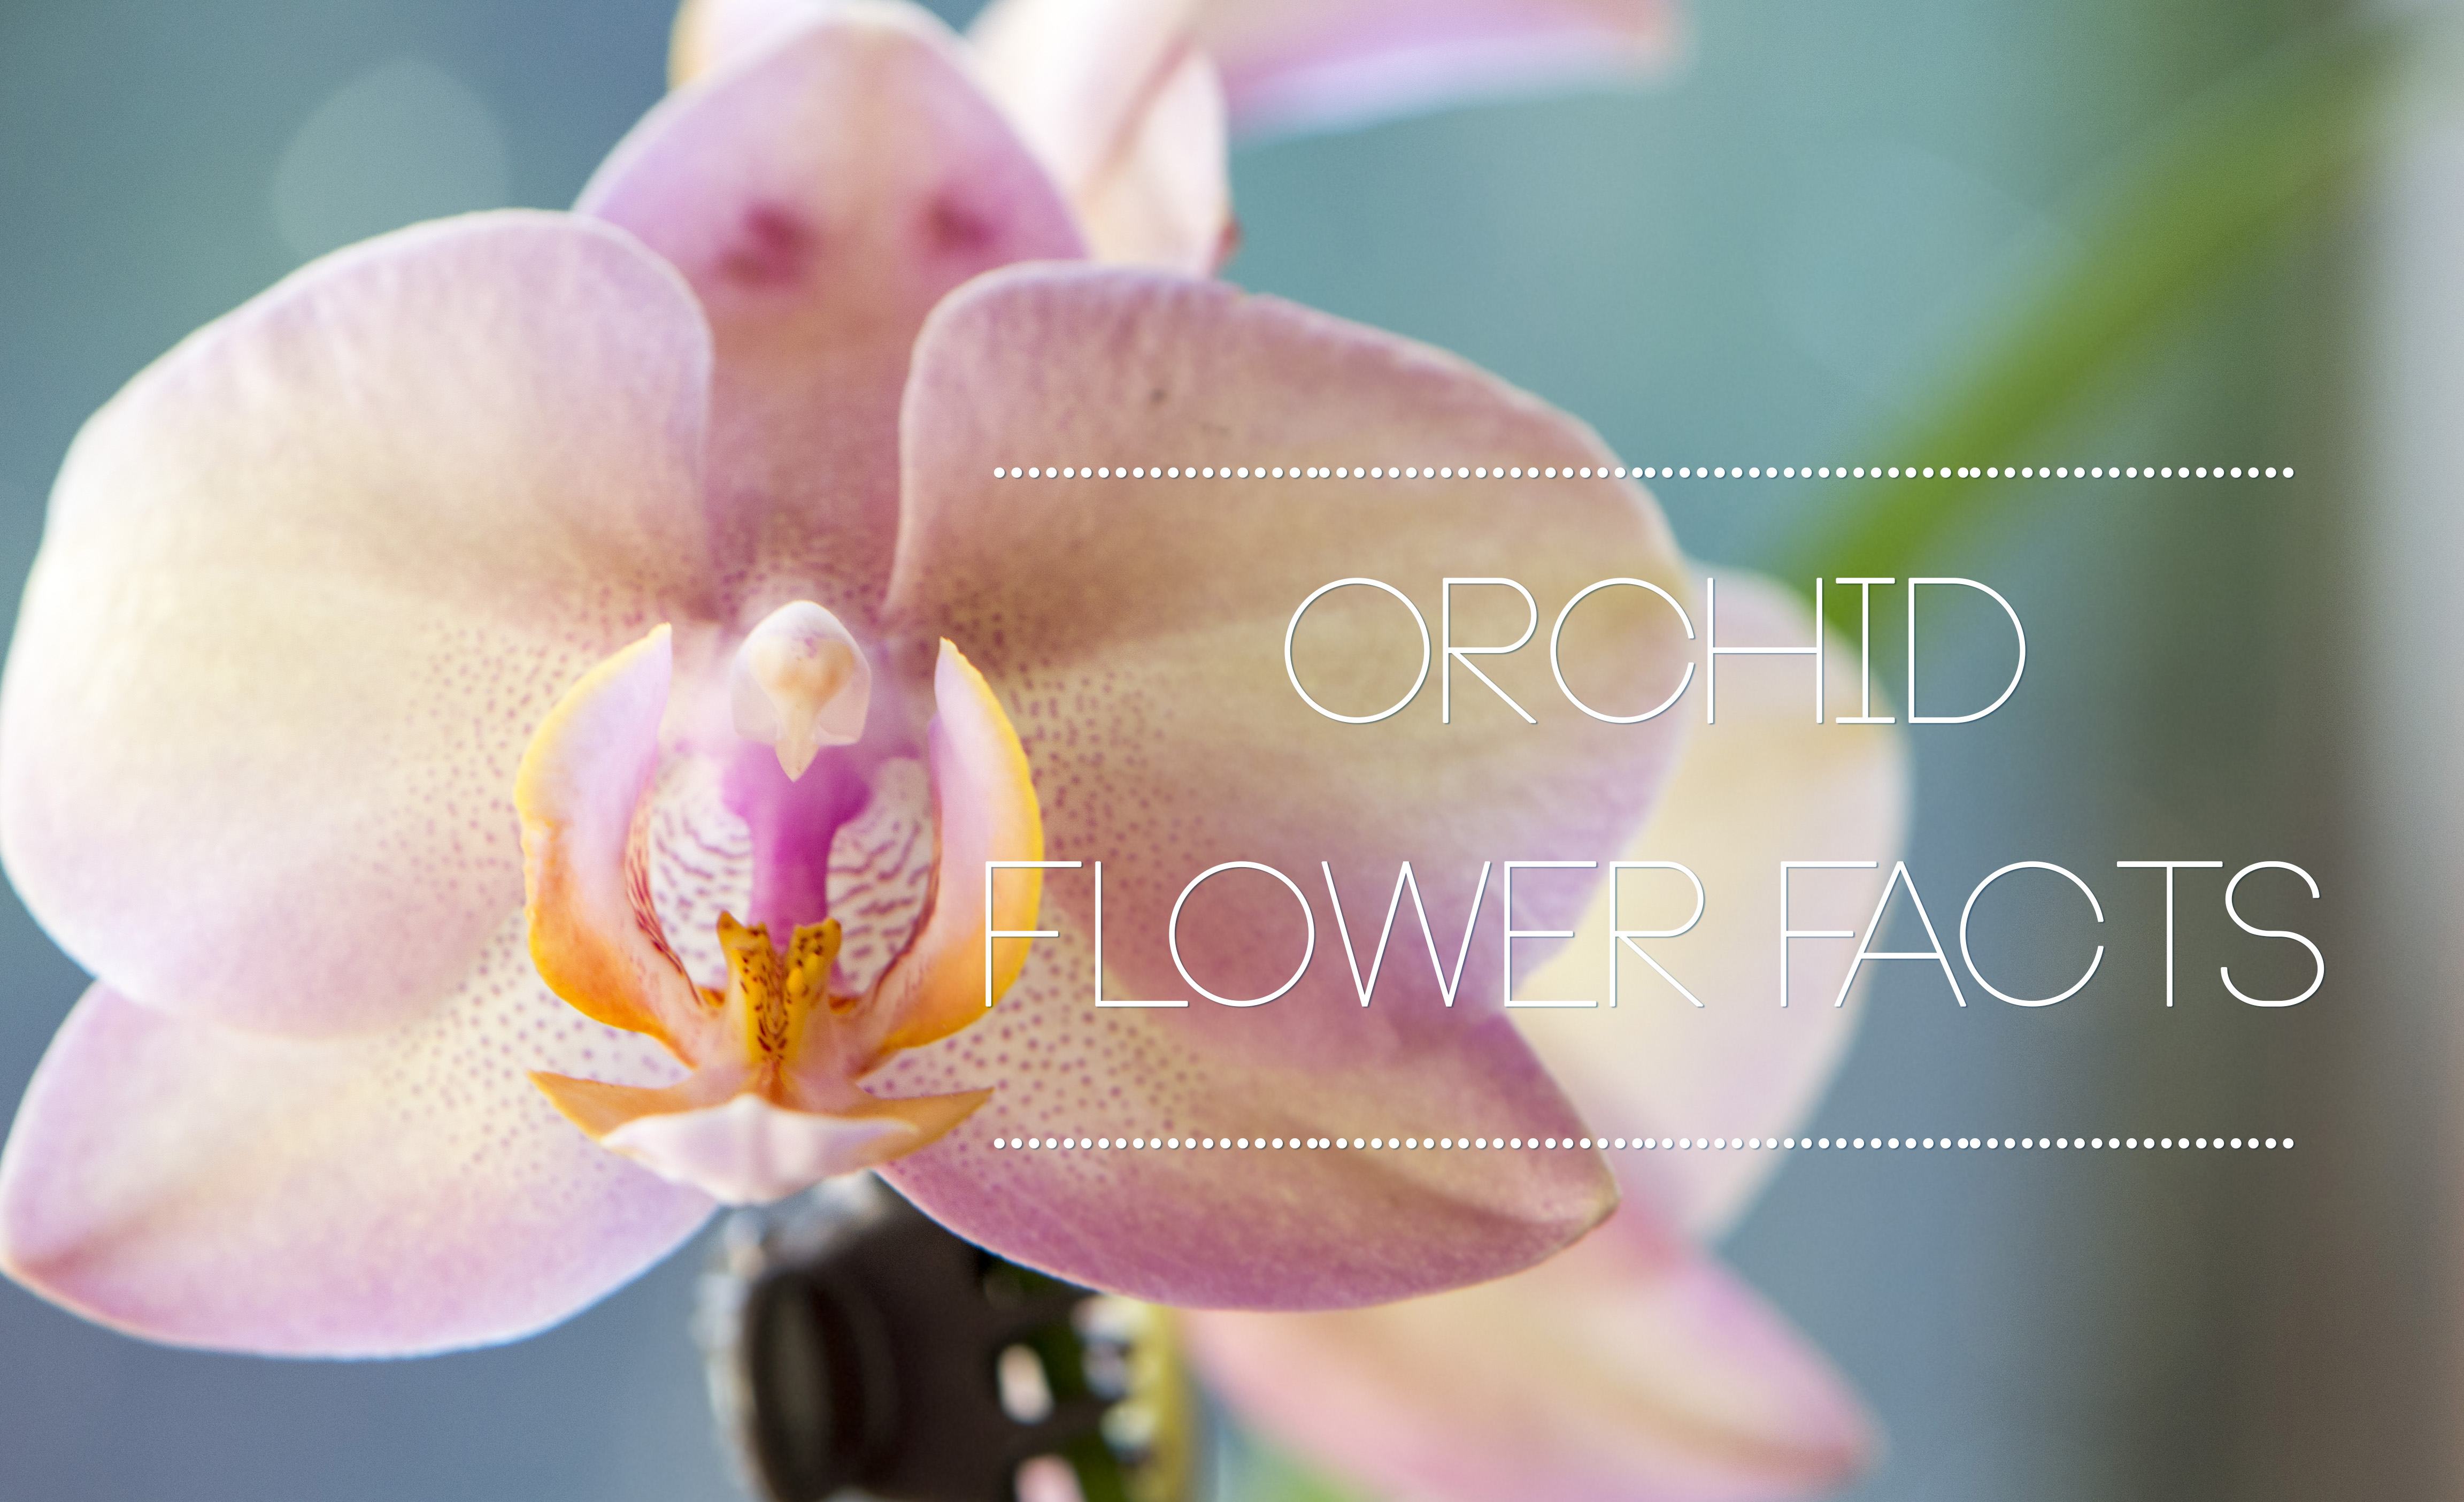 Interesting orchid flower facts